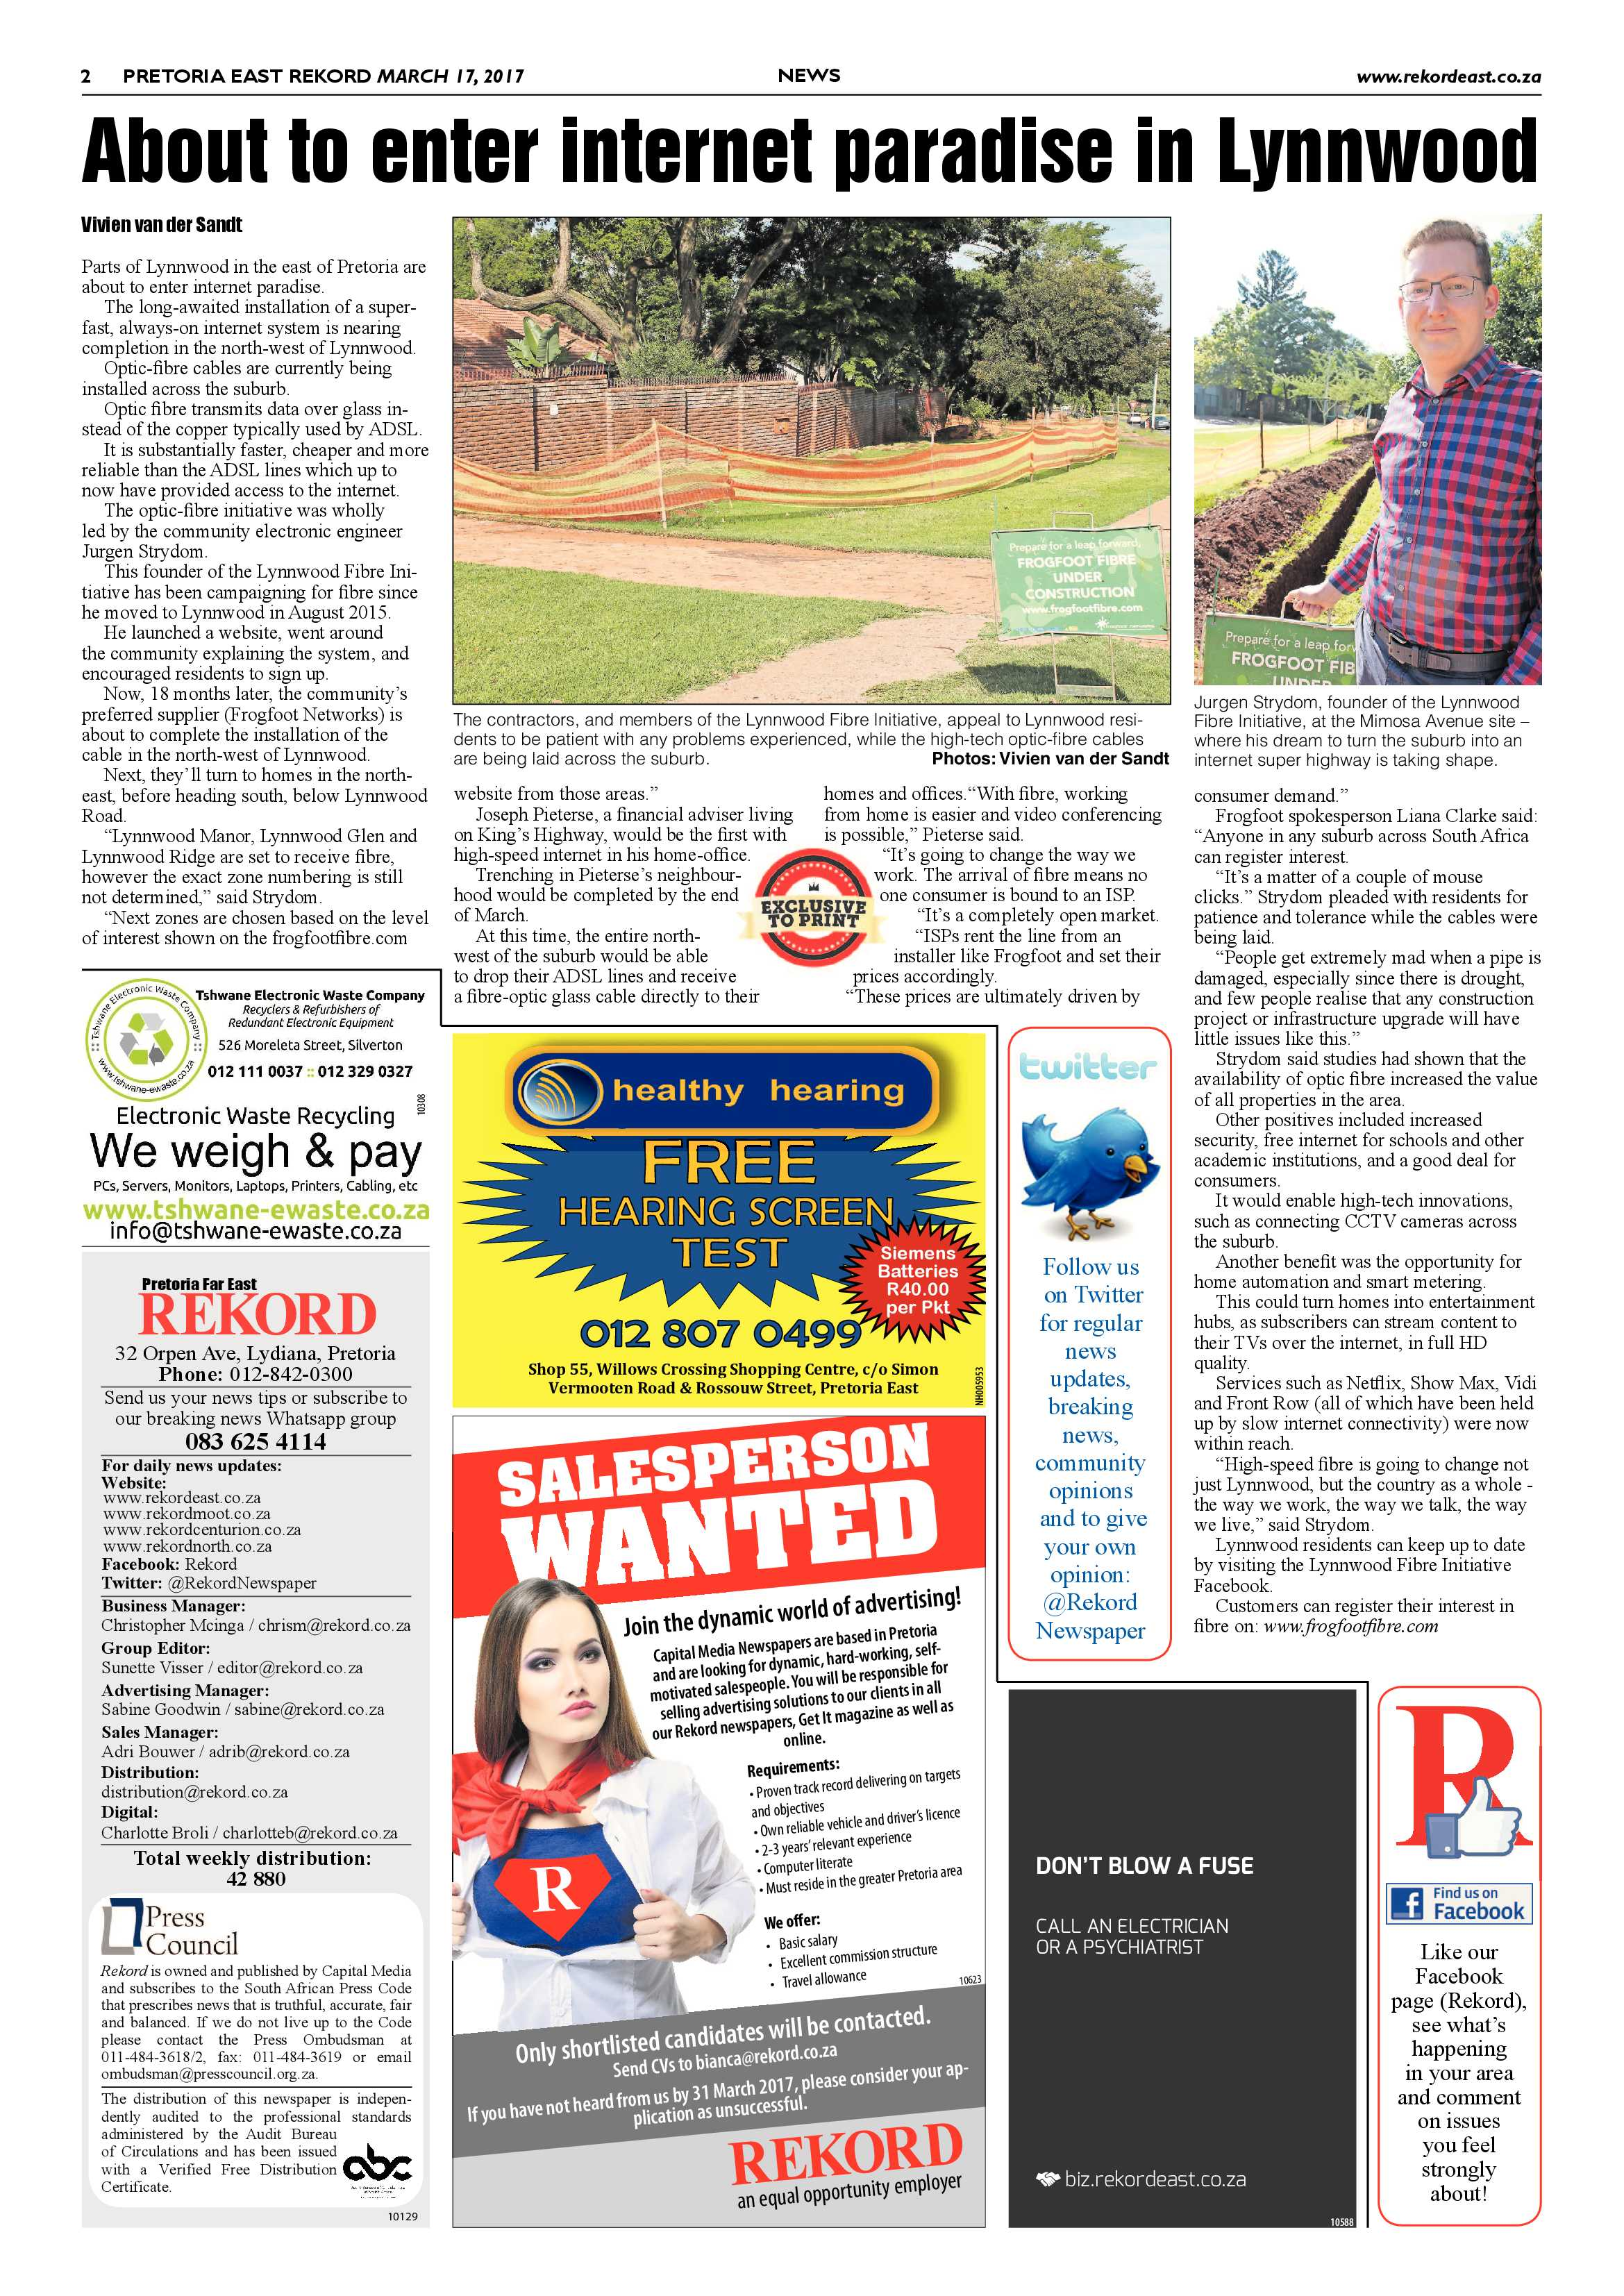 rekord-east-17-march-2017-epapers-page-2